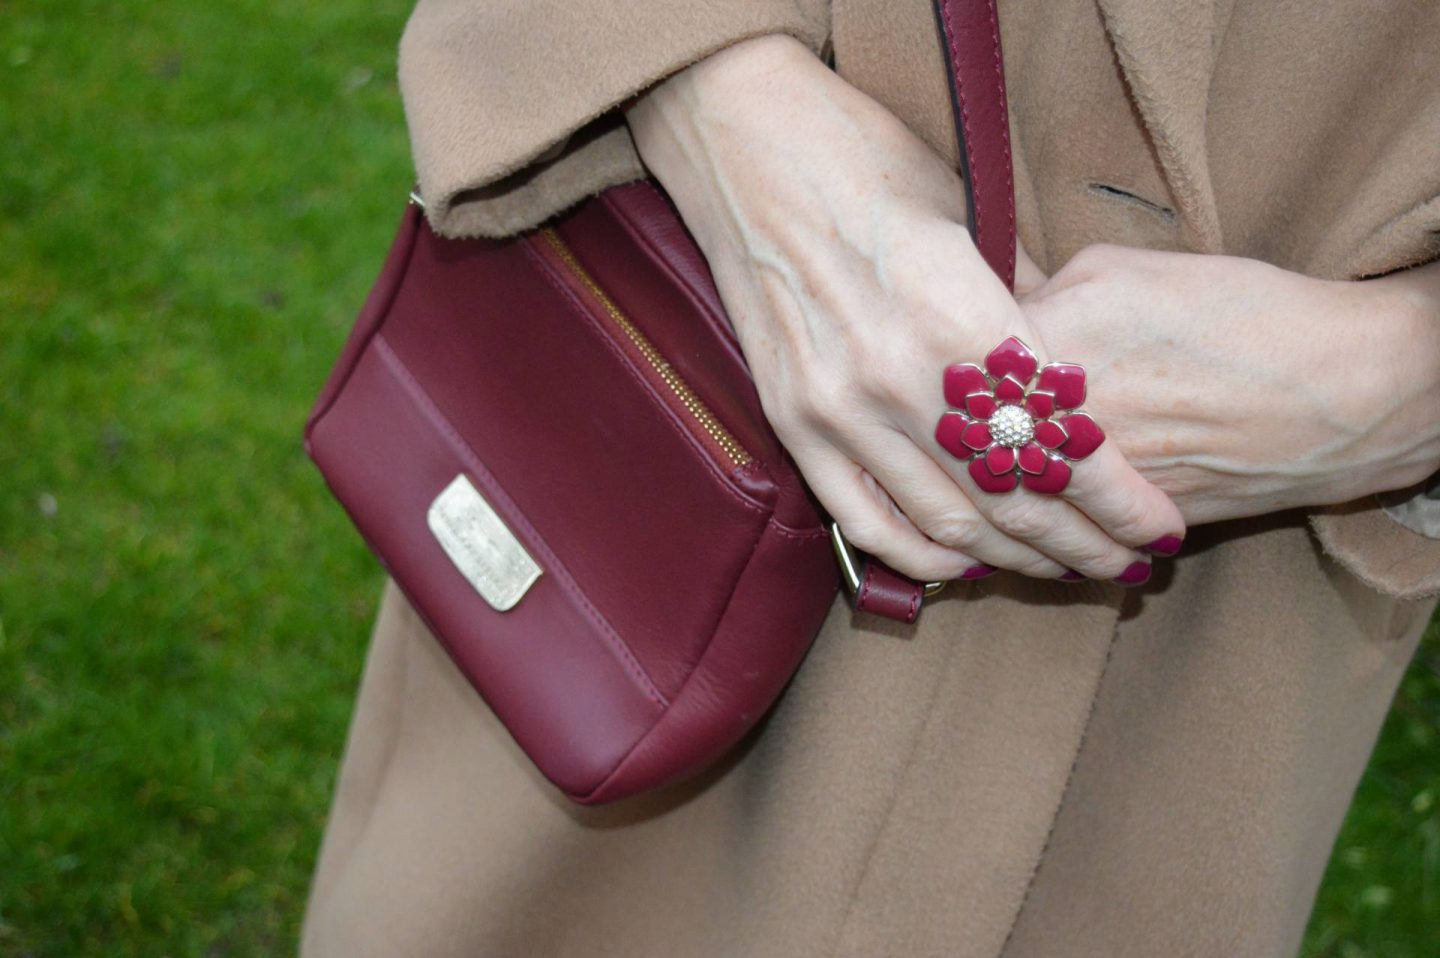 enamel flower ring, Paul Costelloe burgundy crossbody bag